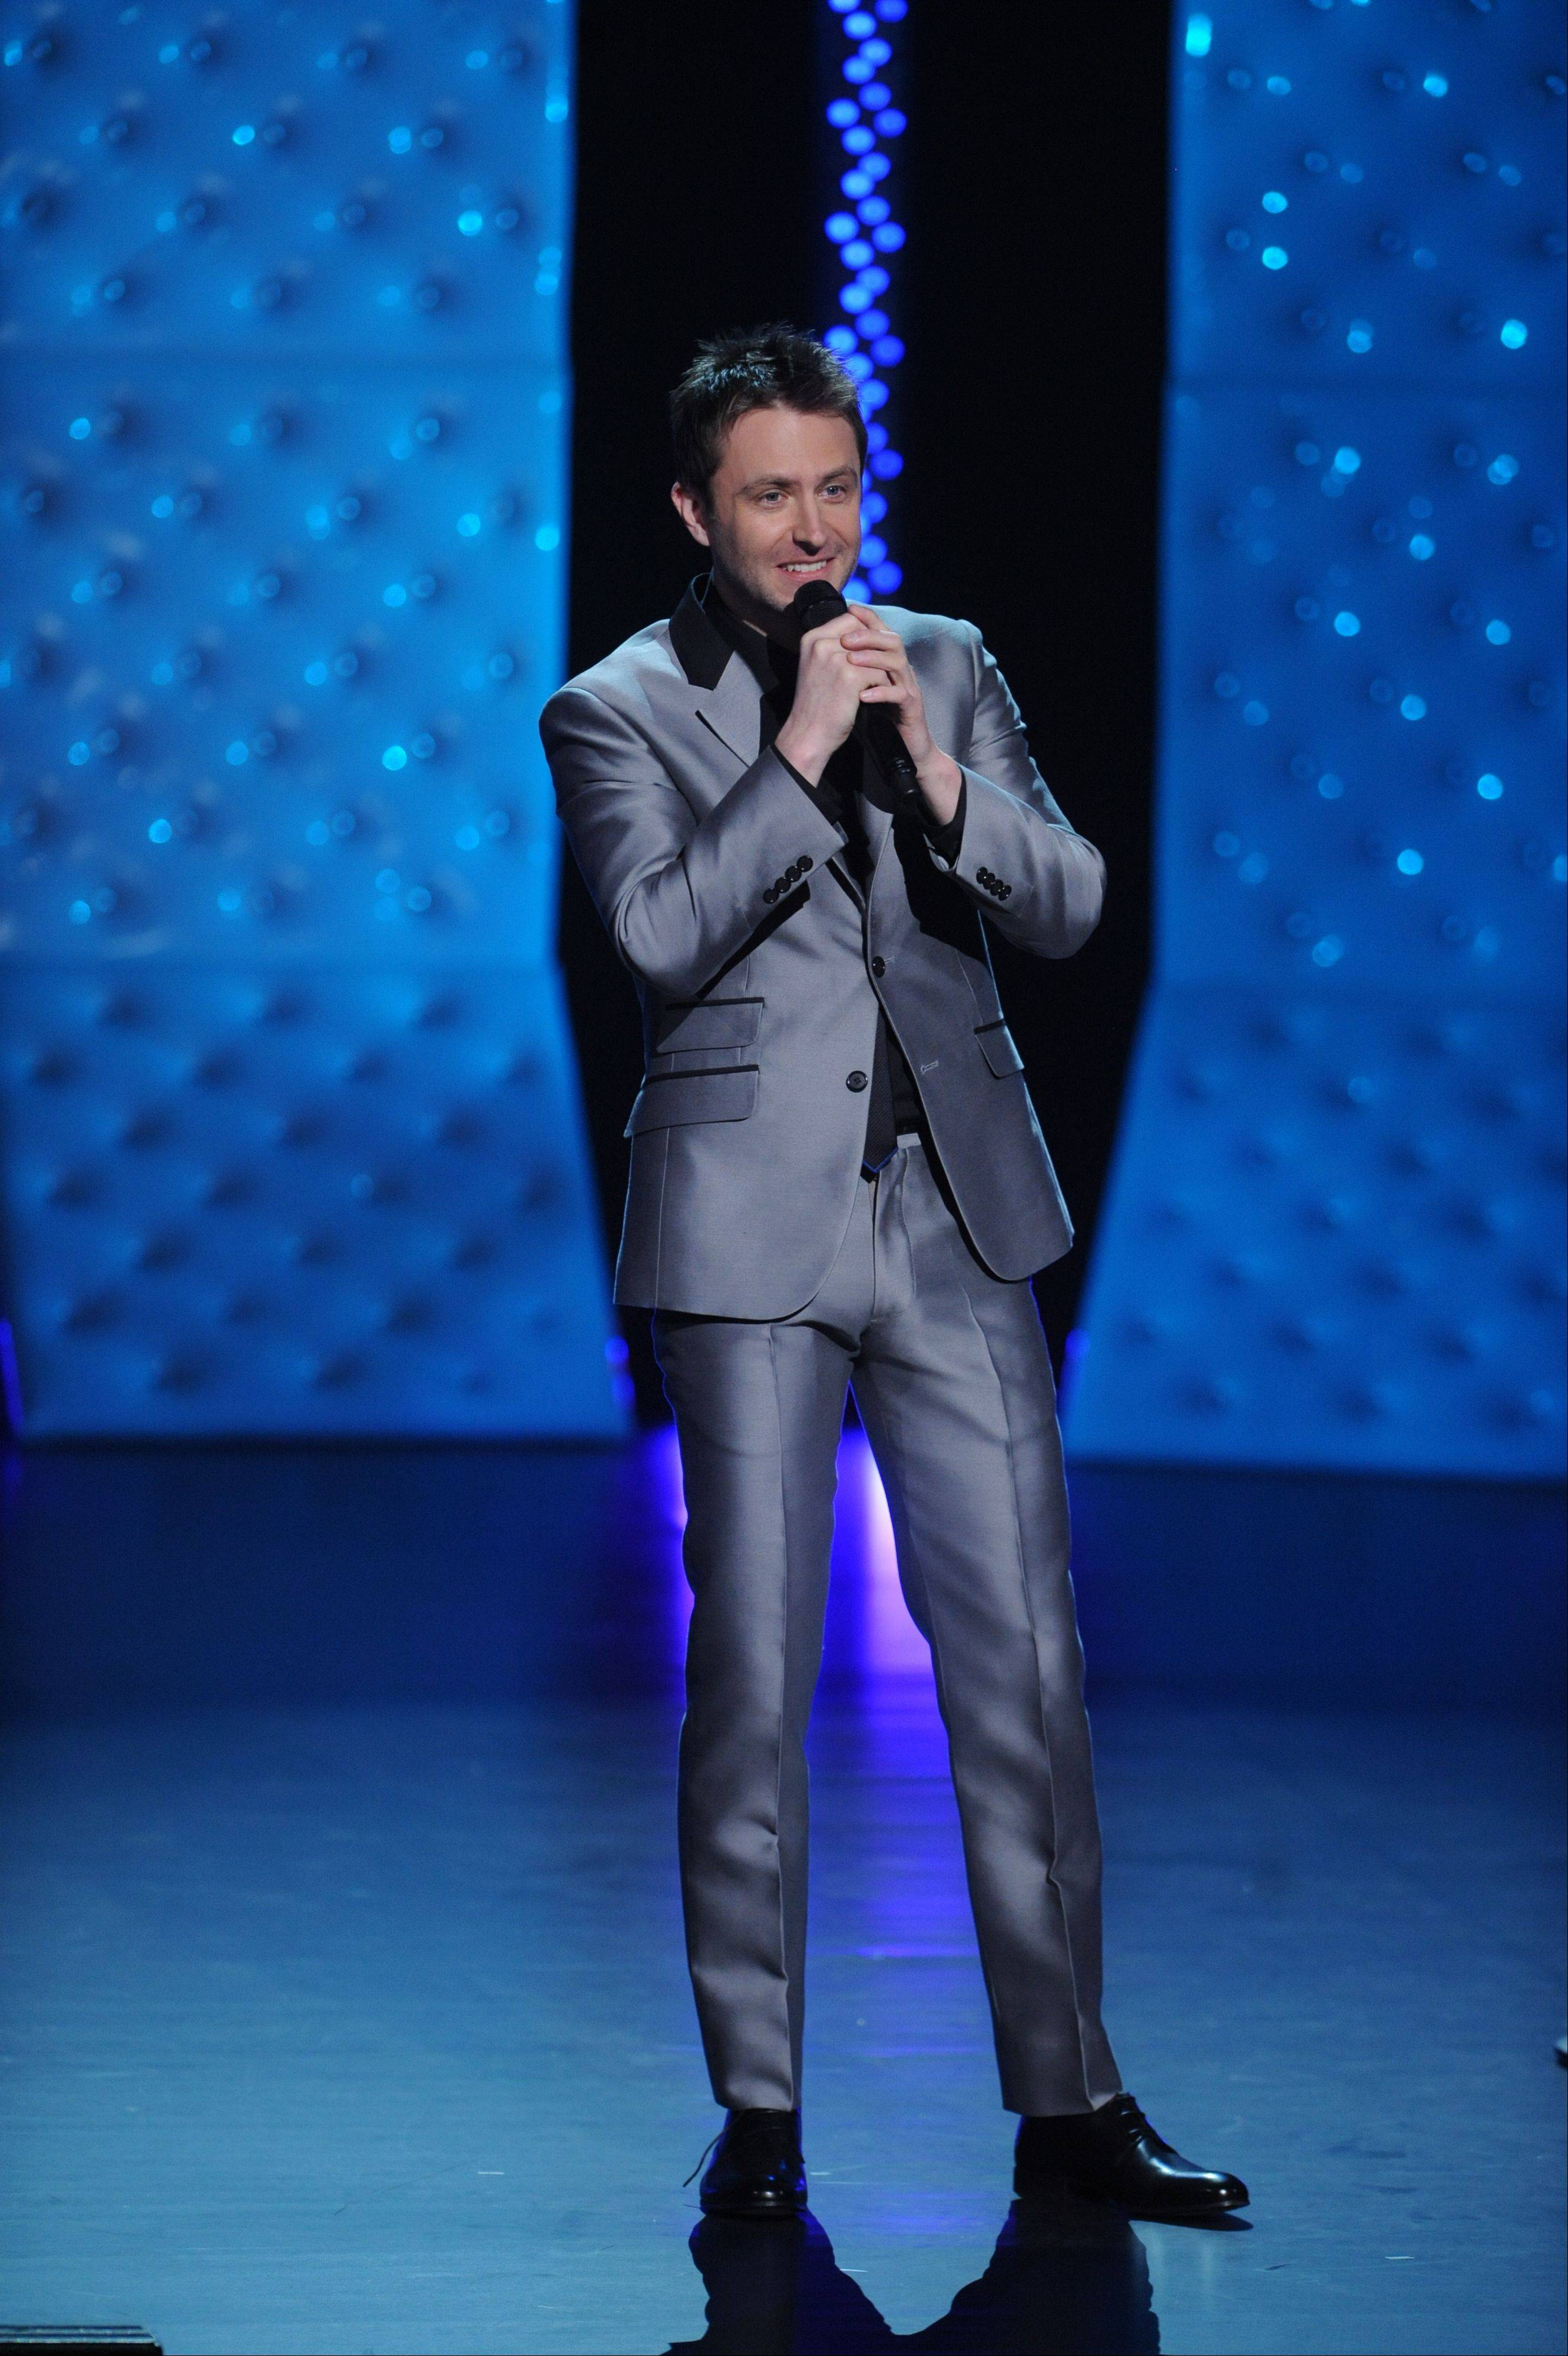 Comedian Chris Hardwick appears at Zanies in Chicago and Rosemont.